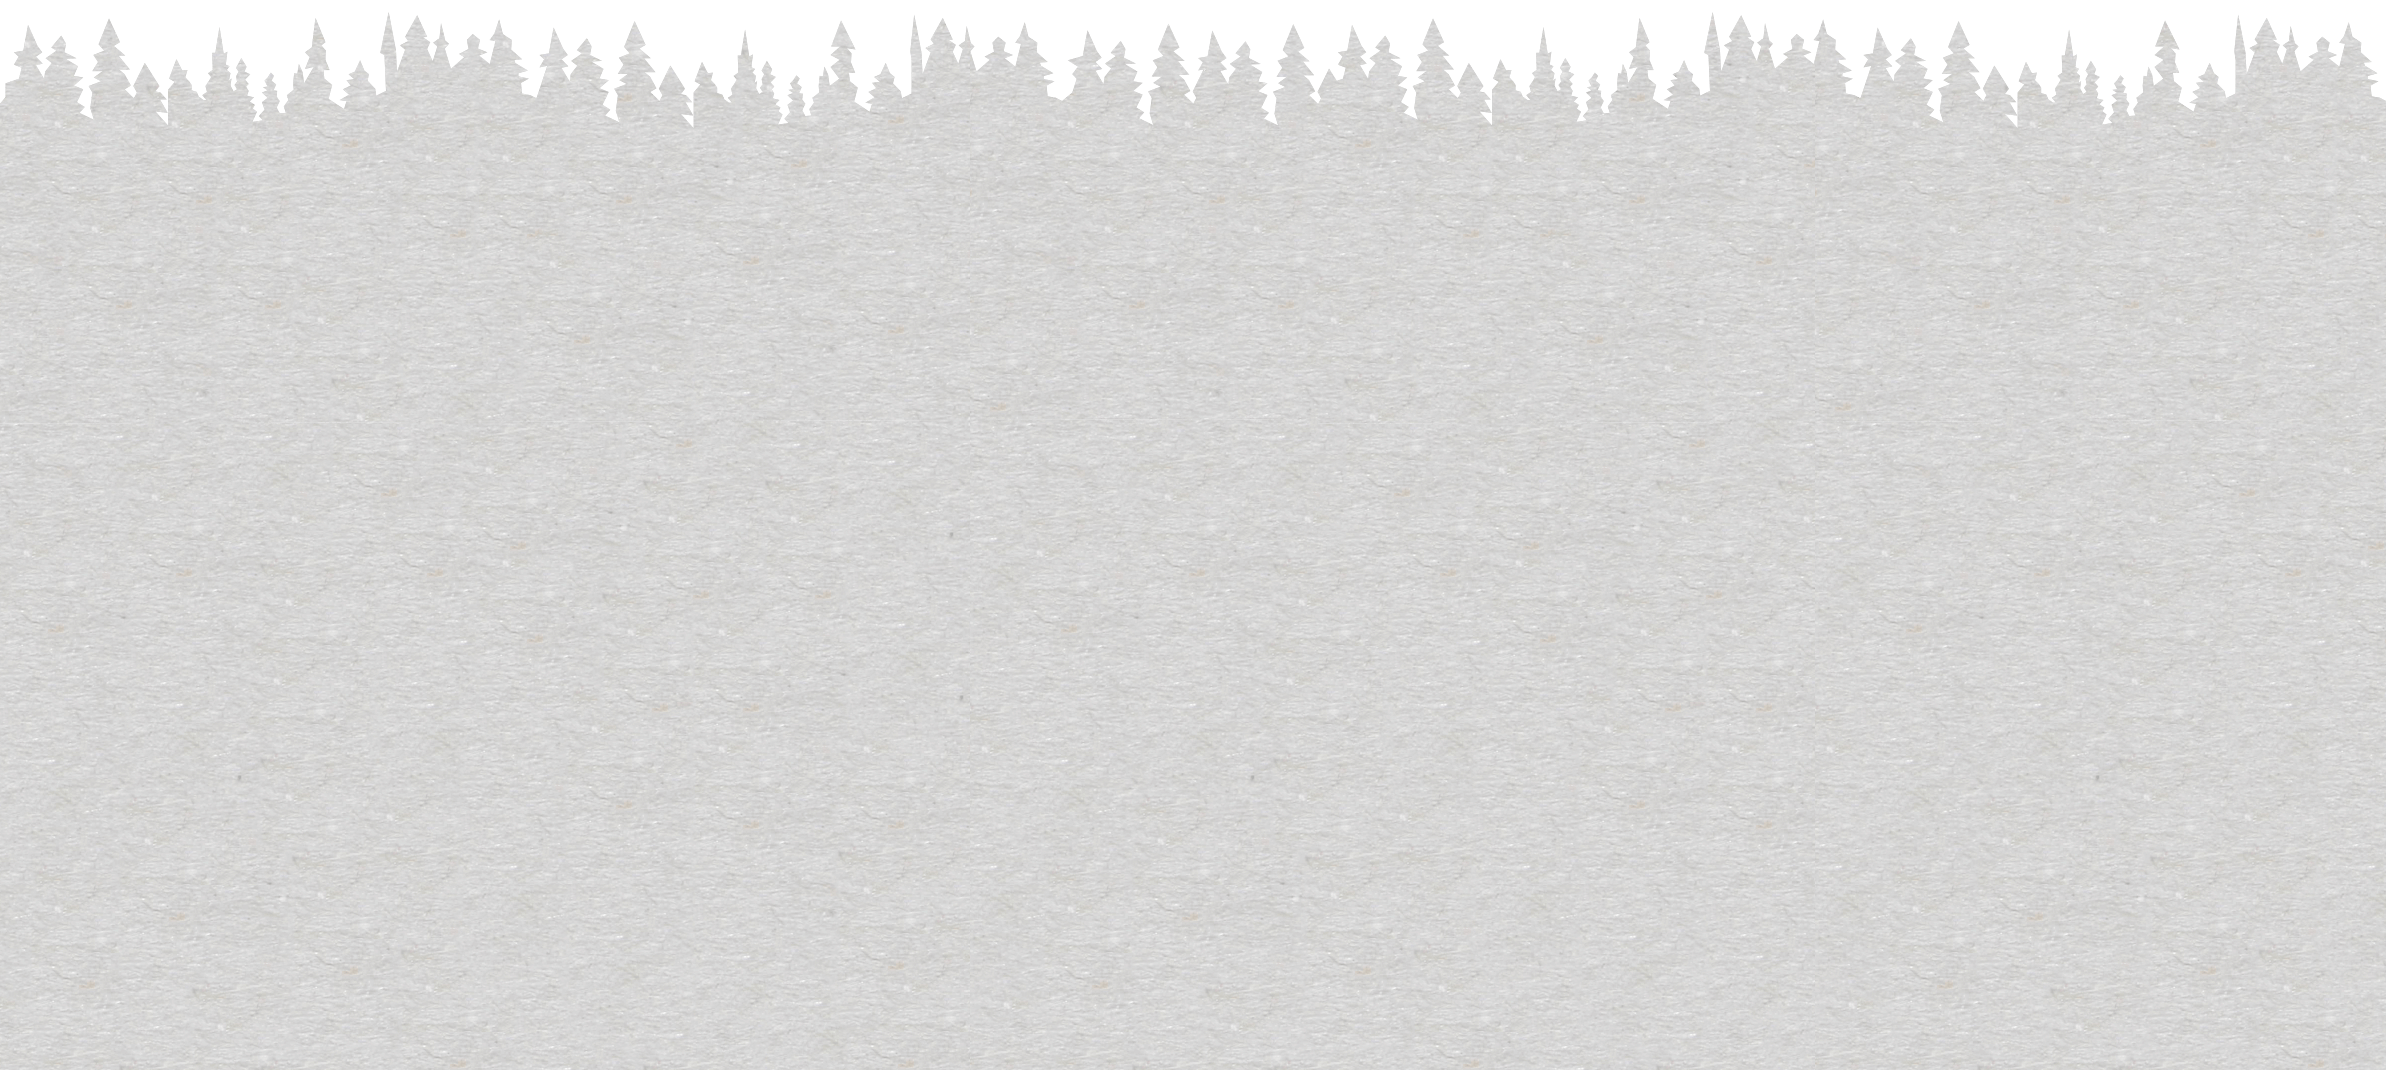 Winter Collection Background Image